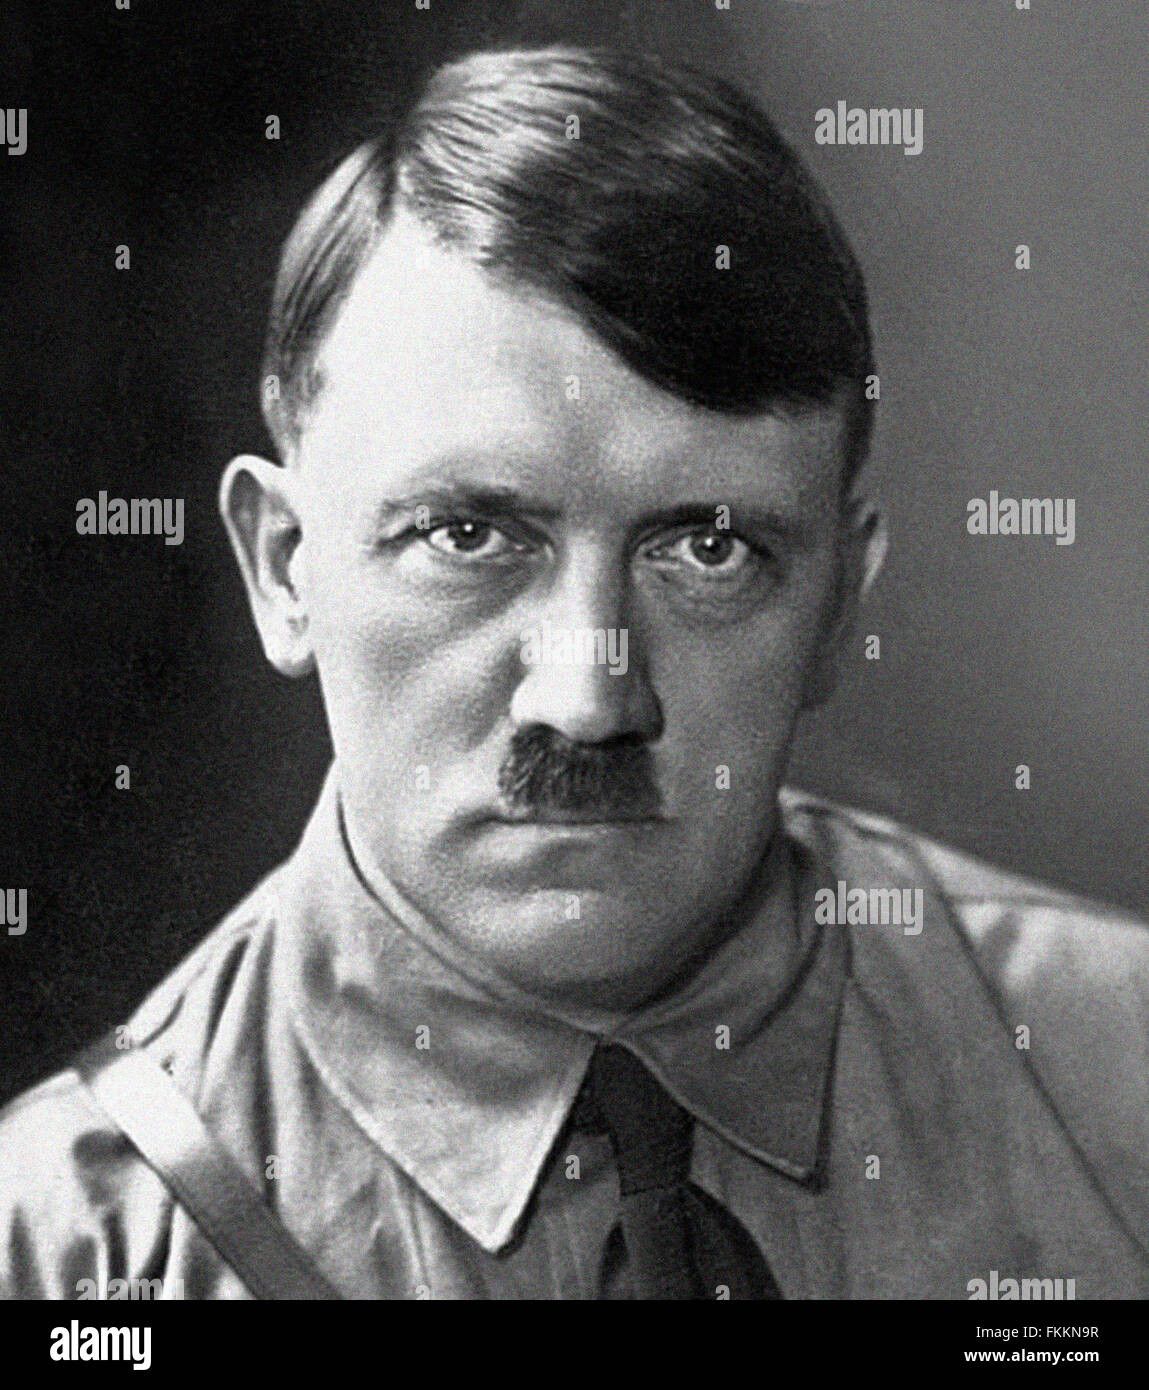 Portrait of Adolf HITLER German wartime leader. New scan from the archives of Press Portrait Service - formerly - Stock Image